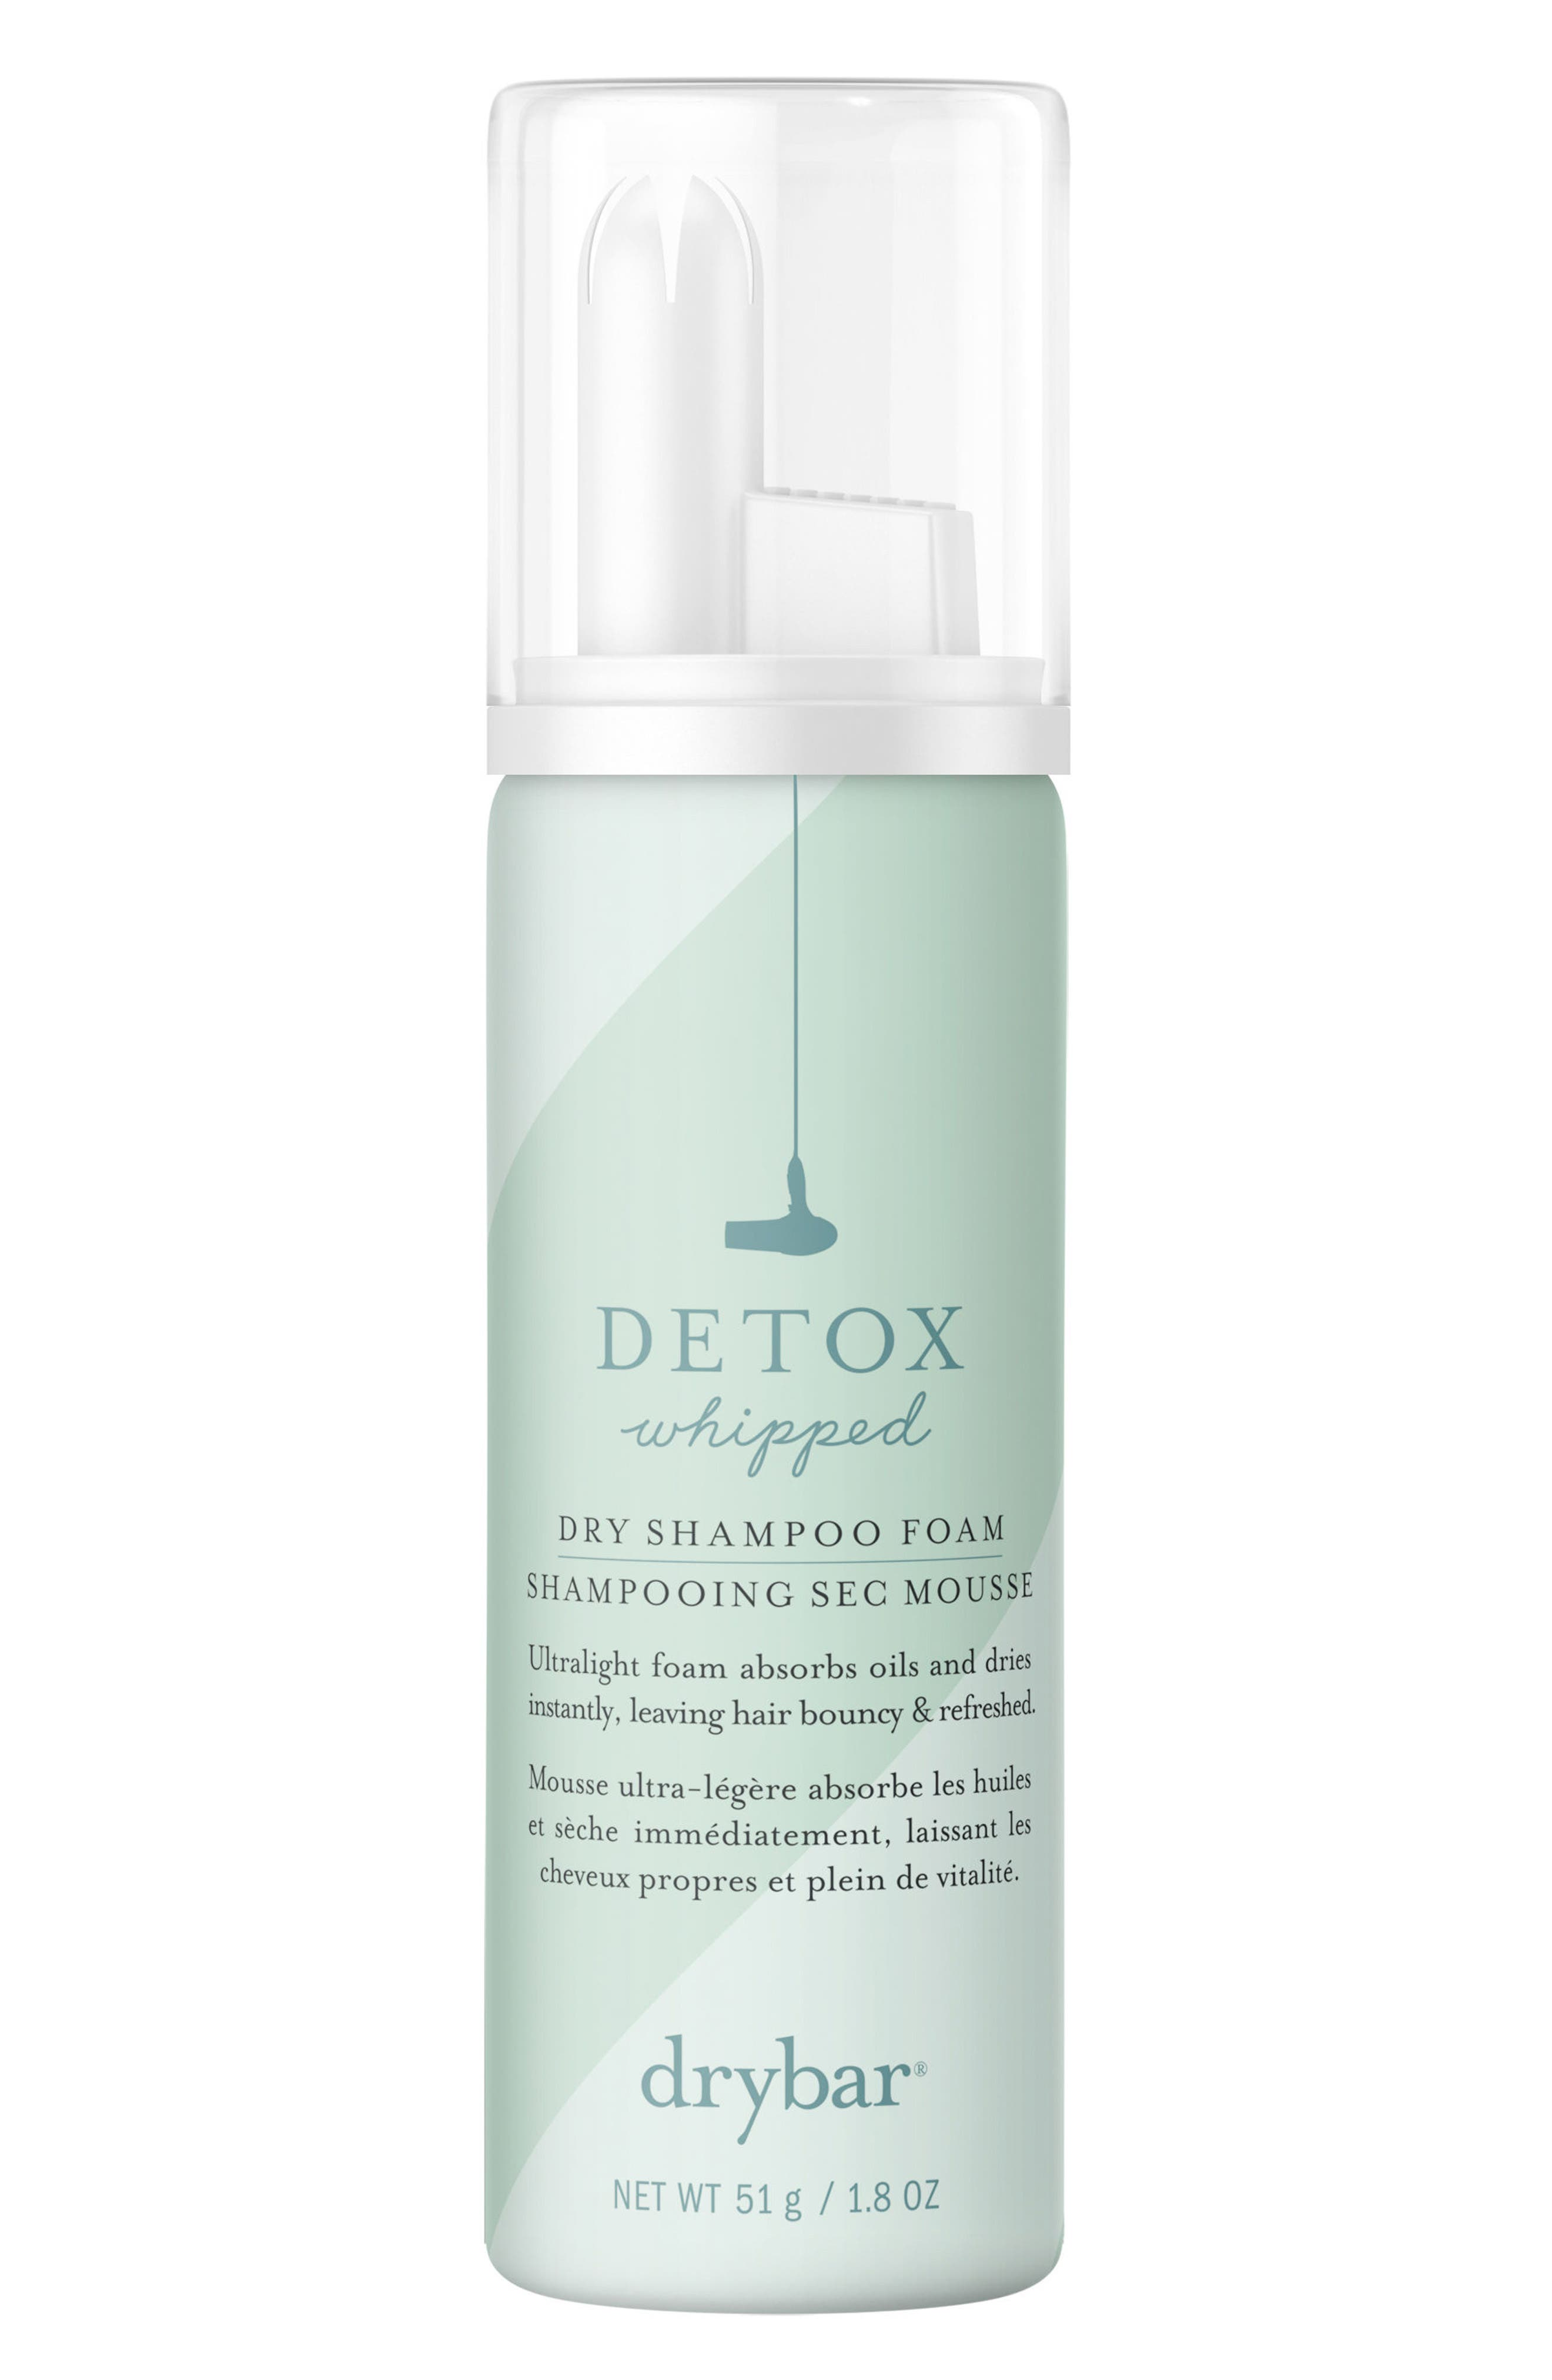 DRYBAR,                             Detox Whipped Dry Shampoo Foam,                             Alternate thumbnail 2, color,                             NO COLOR